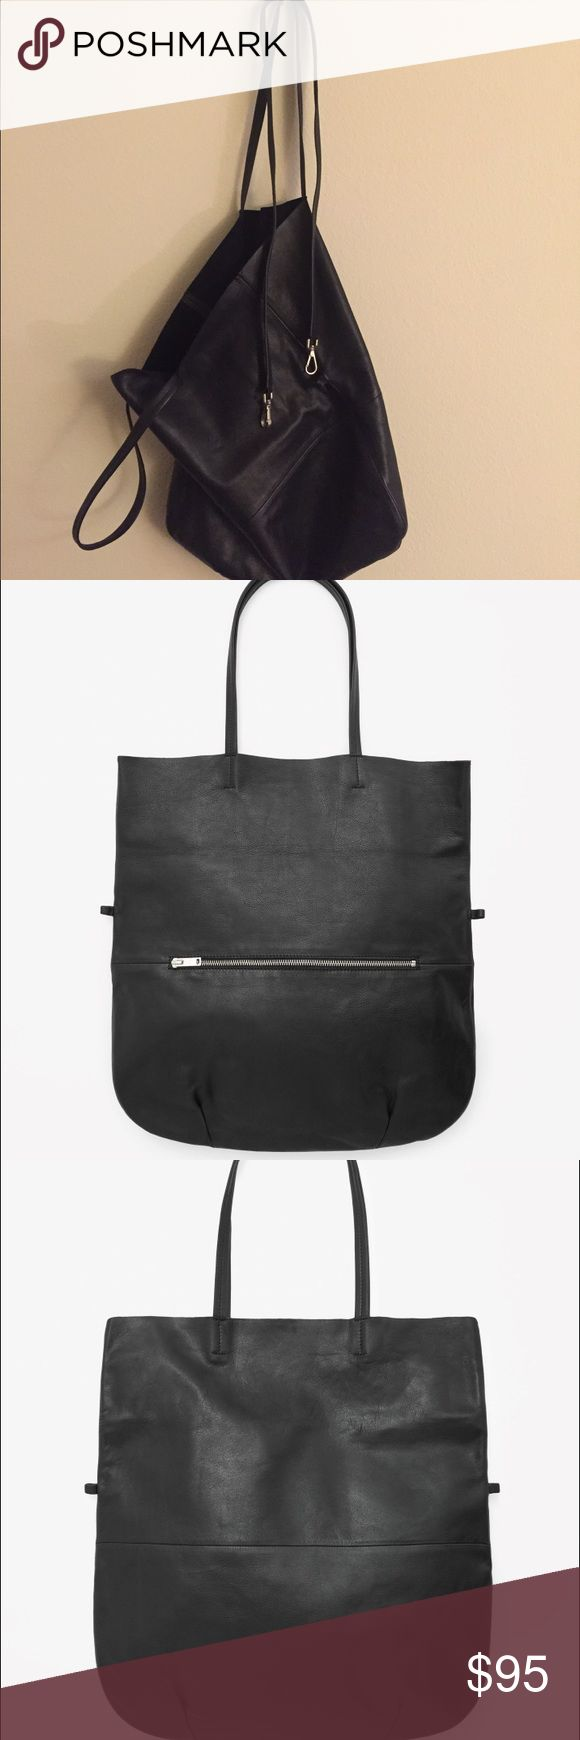 COS raw edge leather tote bag: Used once! This large leather shopper is made from soft, raw-cut leather with a single unlined compartment and smaller zip pocket on the front. A relaxed shape that folds over, it can be held by the handle or worn over the shoulder using the detachable leather strap. COS  Bags Totes